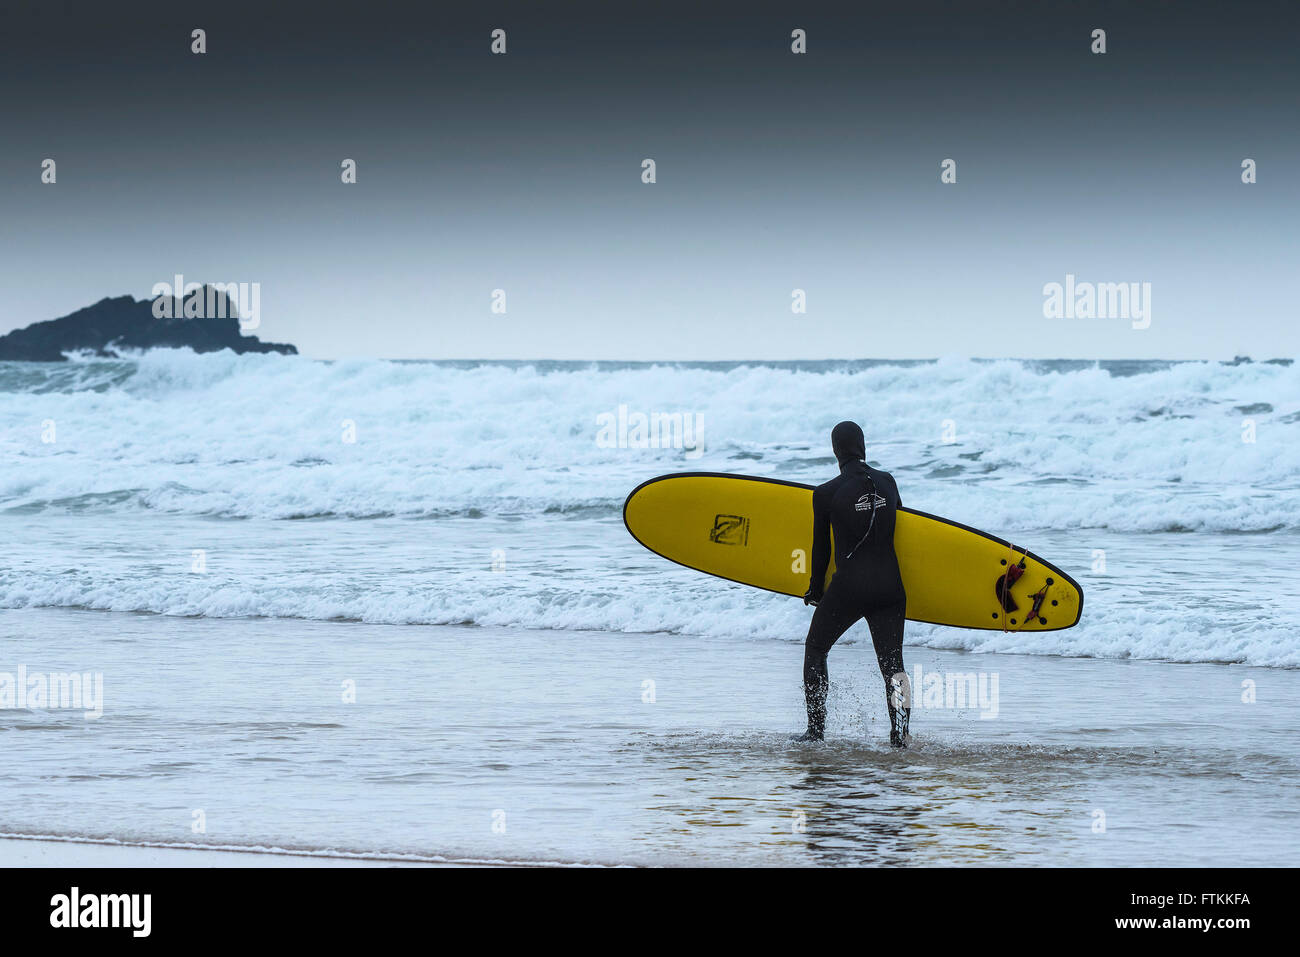 A surfers carries his surboard out to the sea on a cold, chilly day at Fistral Beach in Newquay, Cornwall. - Stock Image